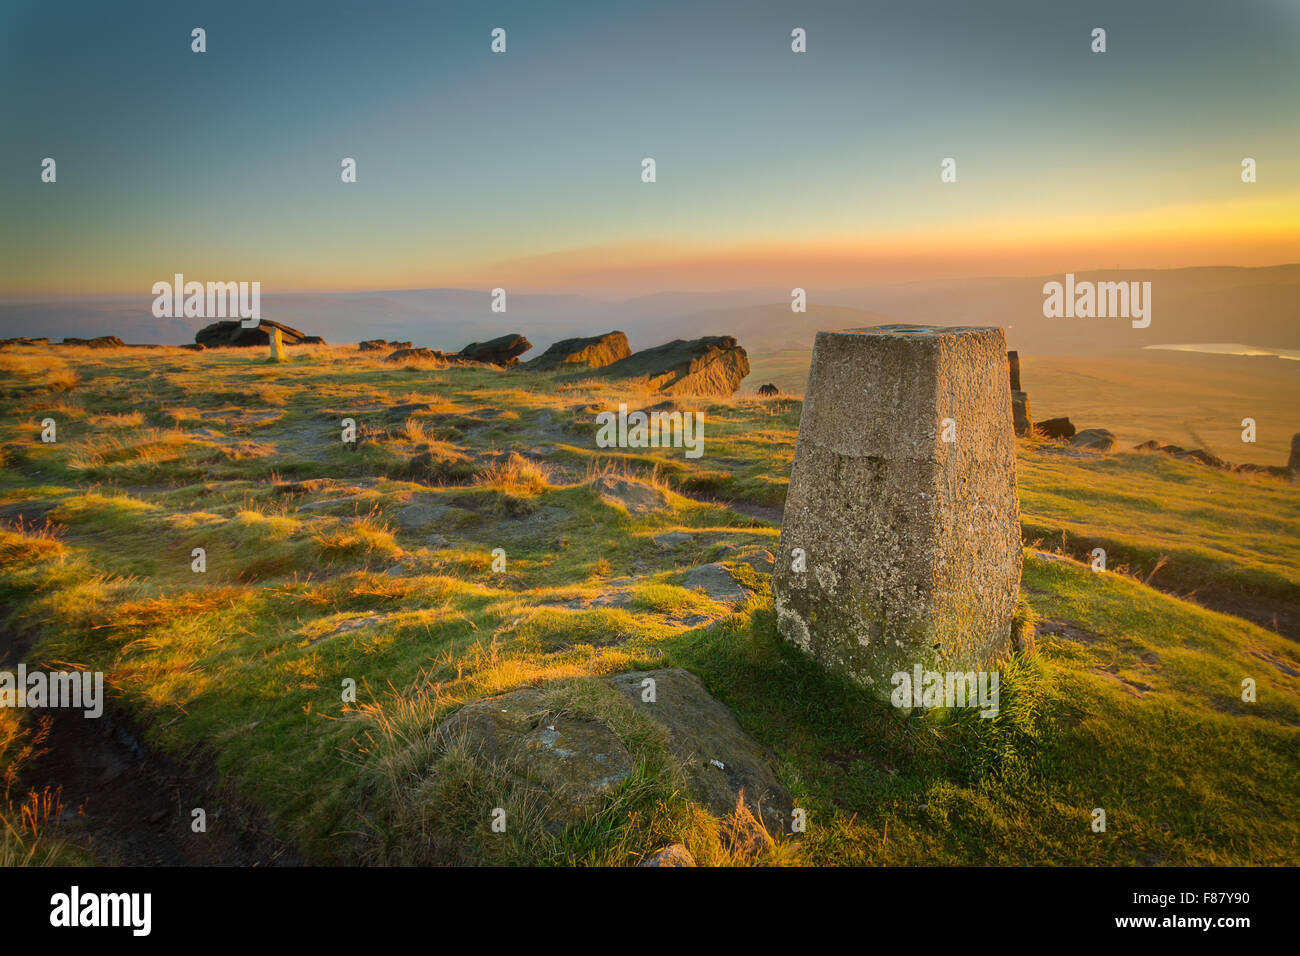 A view over Saddleworth from the Triangulation Point on Millstone Edge, Marsden Moor. - Stock Image